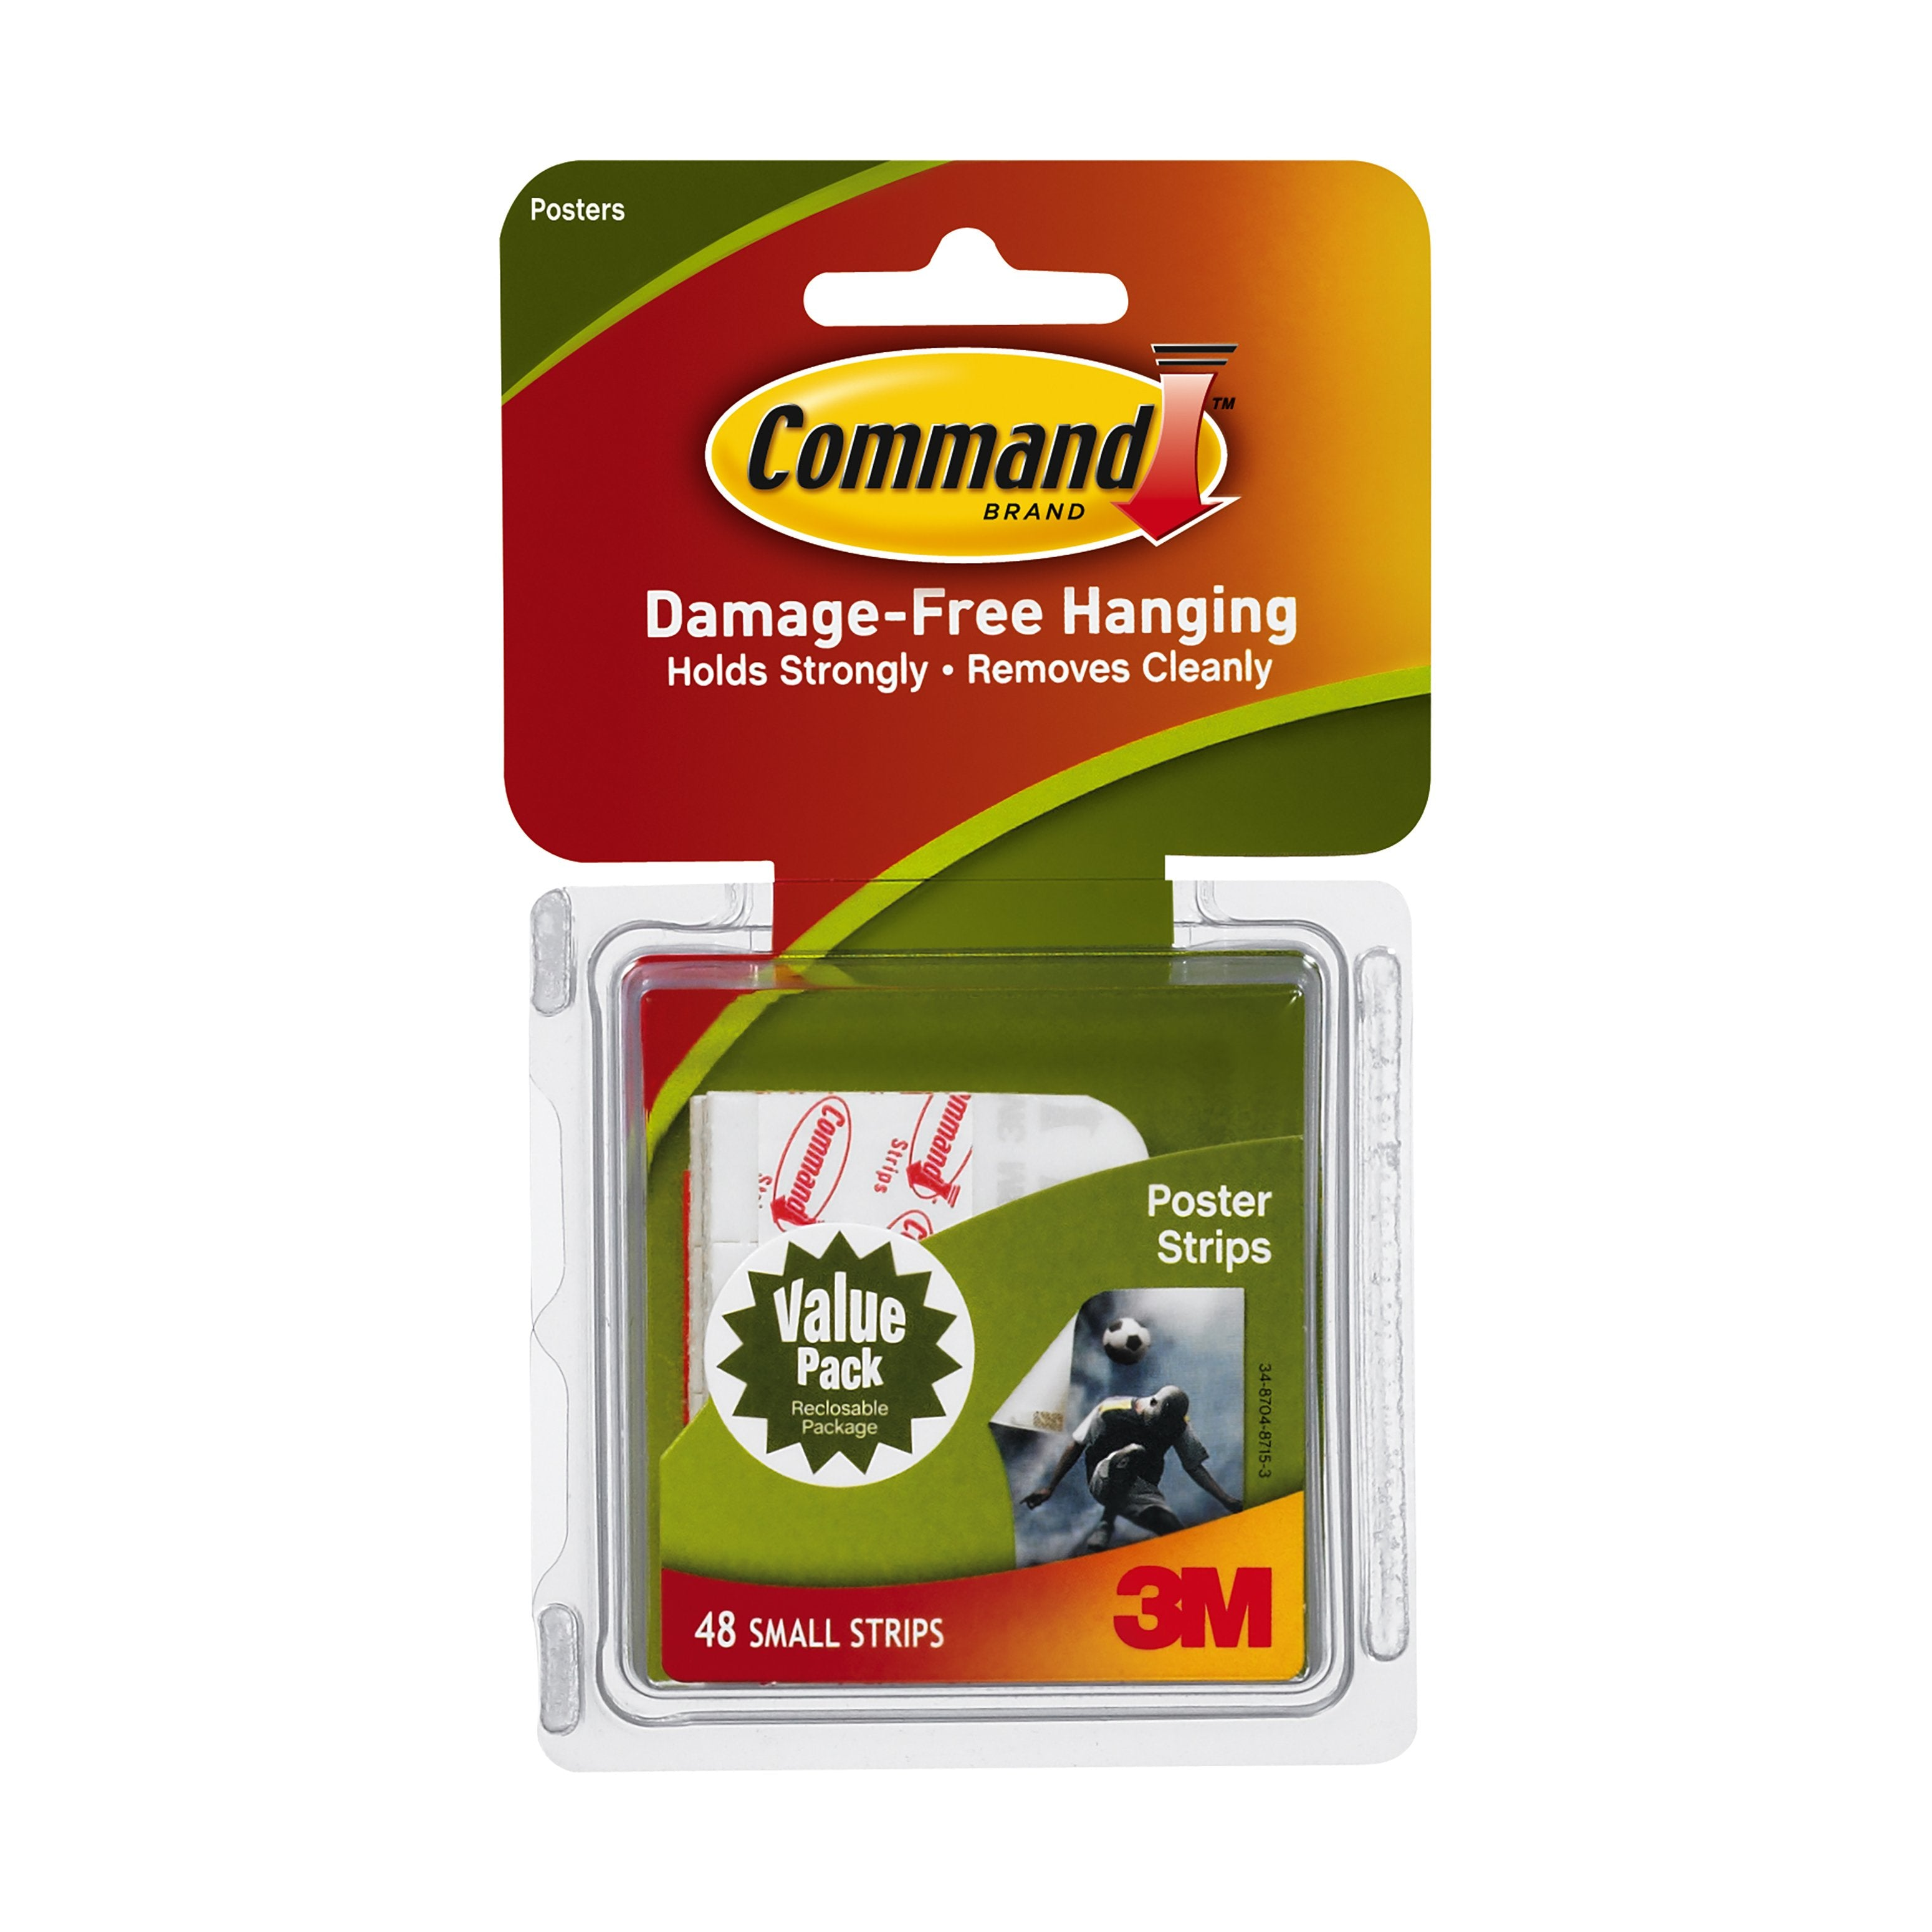 3M Command Poster Hanging Strips, Small, 48/Pkg.